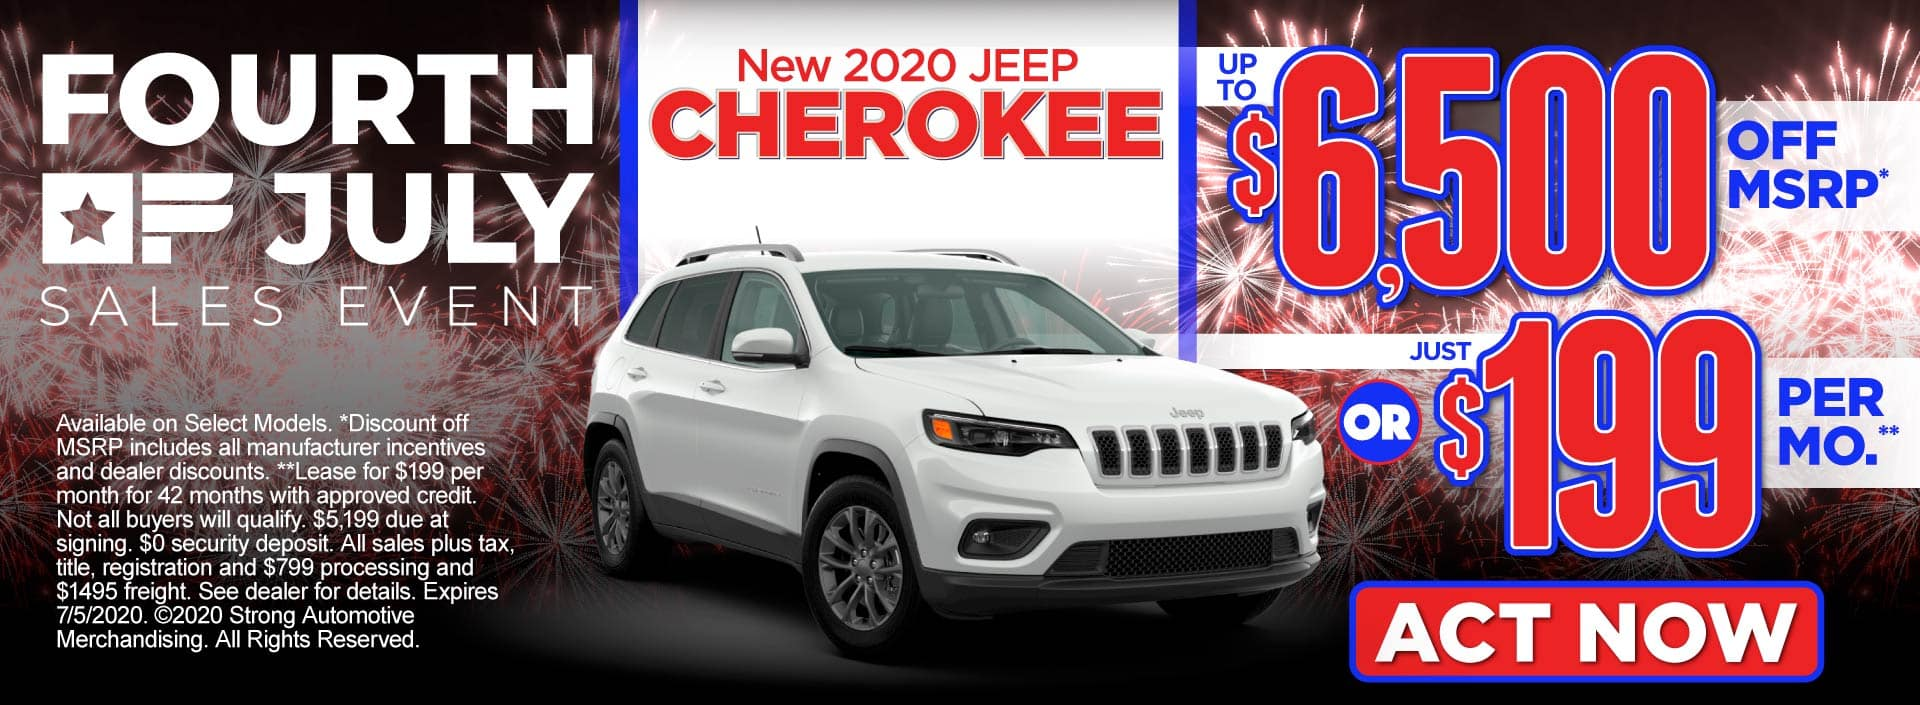 New 2020 Jeep Cherokee – up to $6,500 off MSRP* or just $199 per month** – Act Now